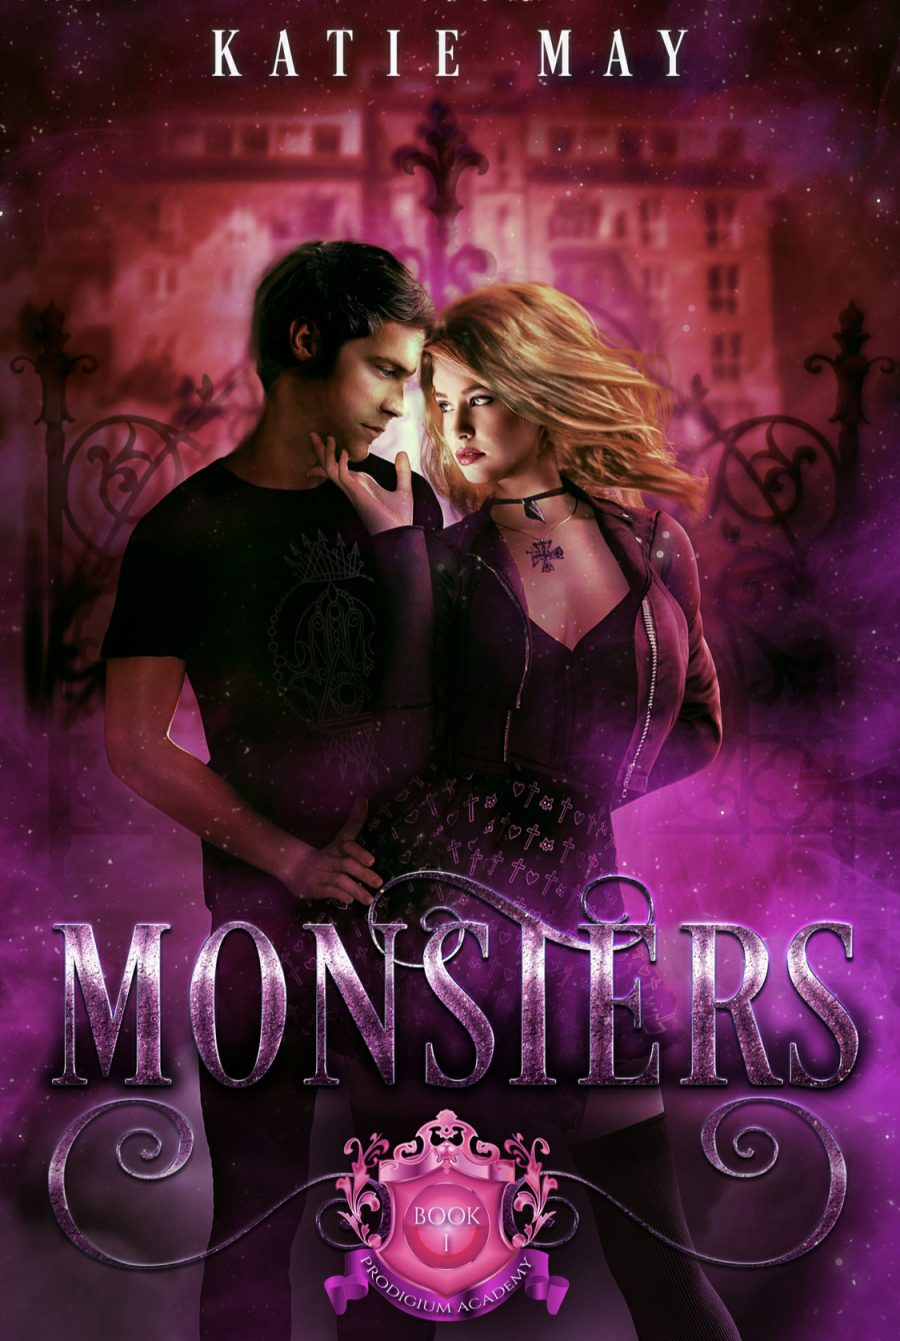 Monsters by Katie May - A Book Review #BookReview #RH #WhyChoose #ReverseHarem #SlowBurn #PNR #Academy #Monsters